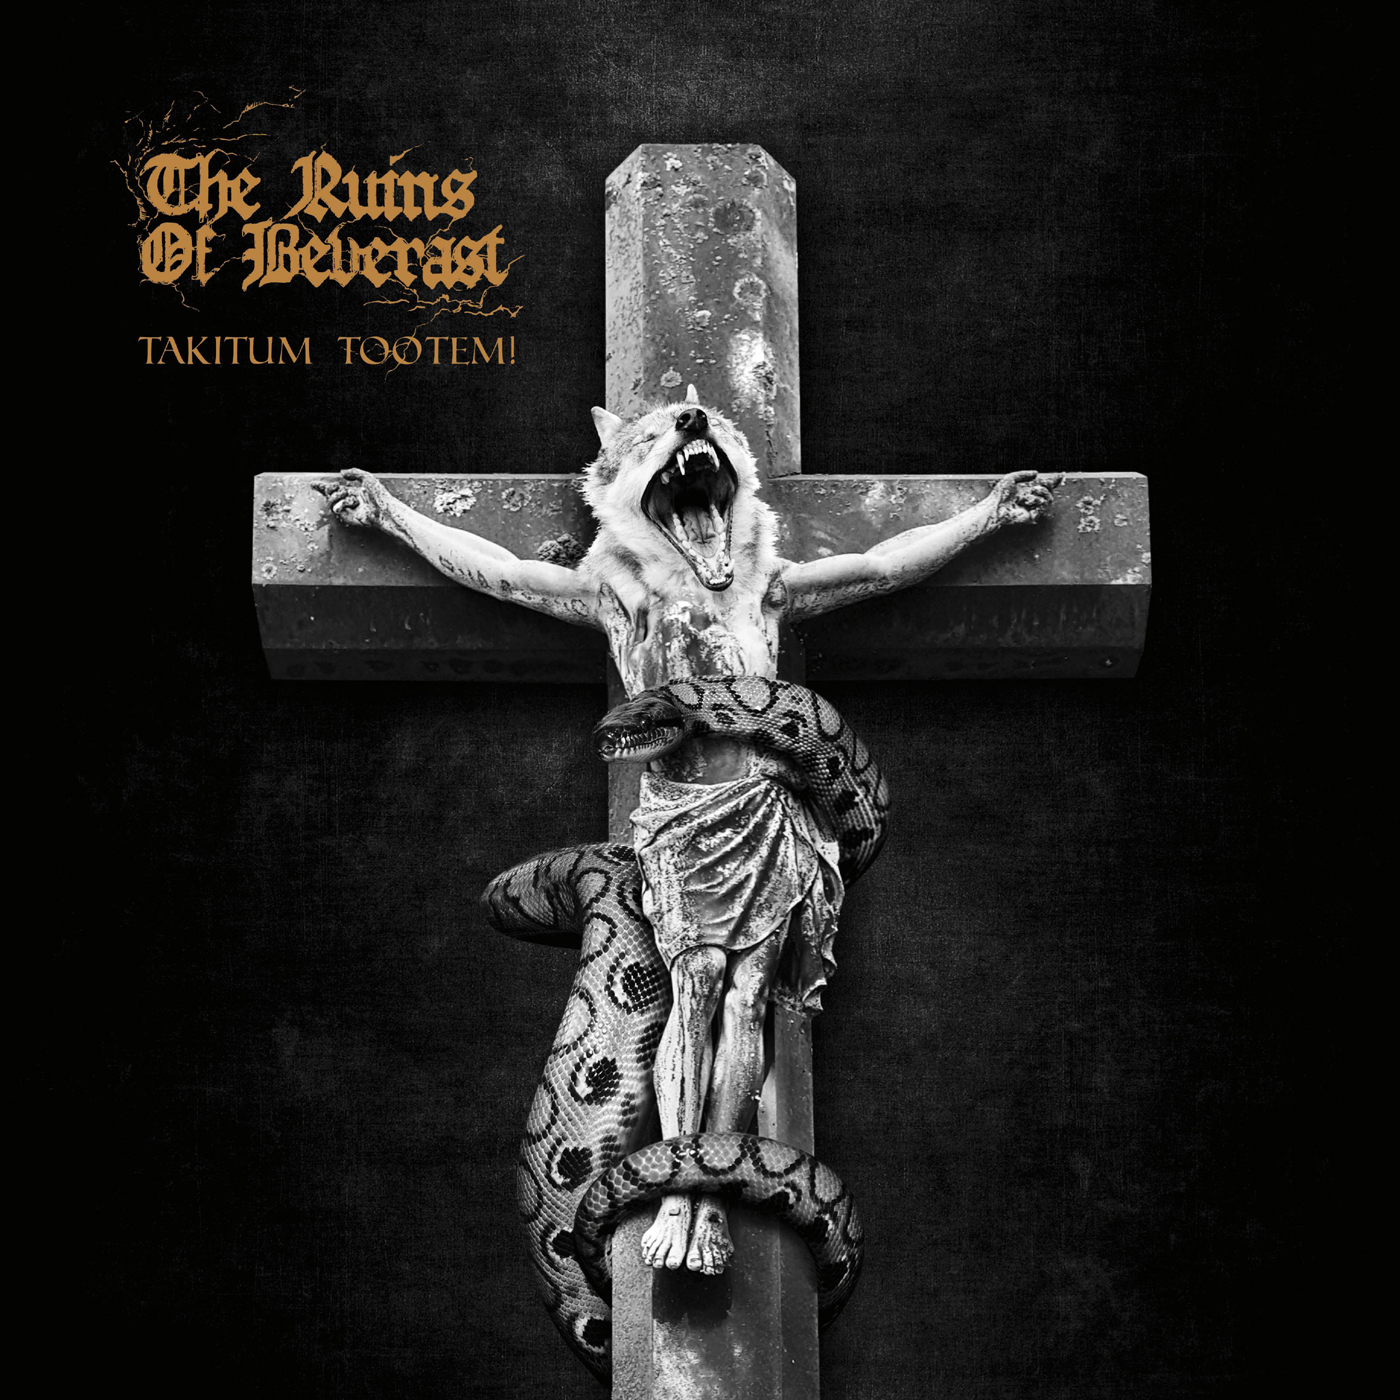 The Ruins Of Beverast – Takitum Tootem!